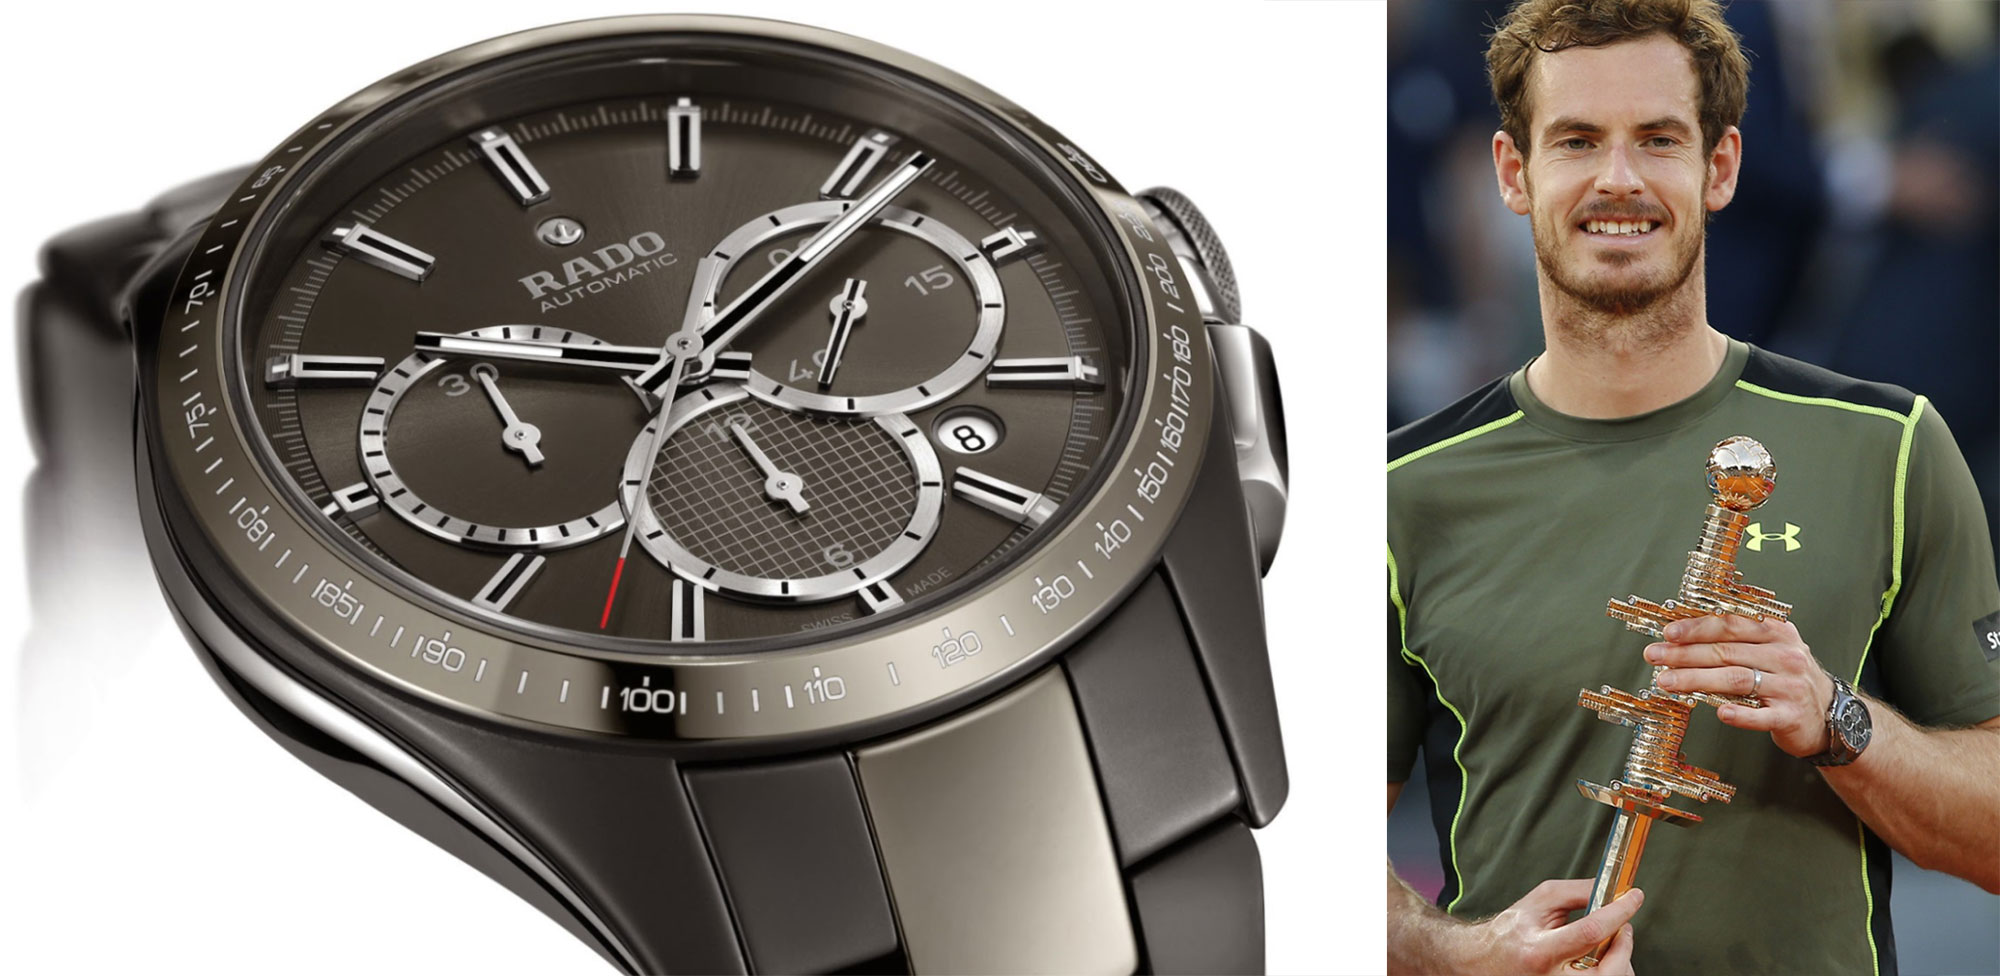 Rado Automatic Chronograph watch worn by Andy Murray